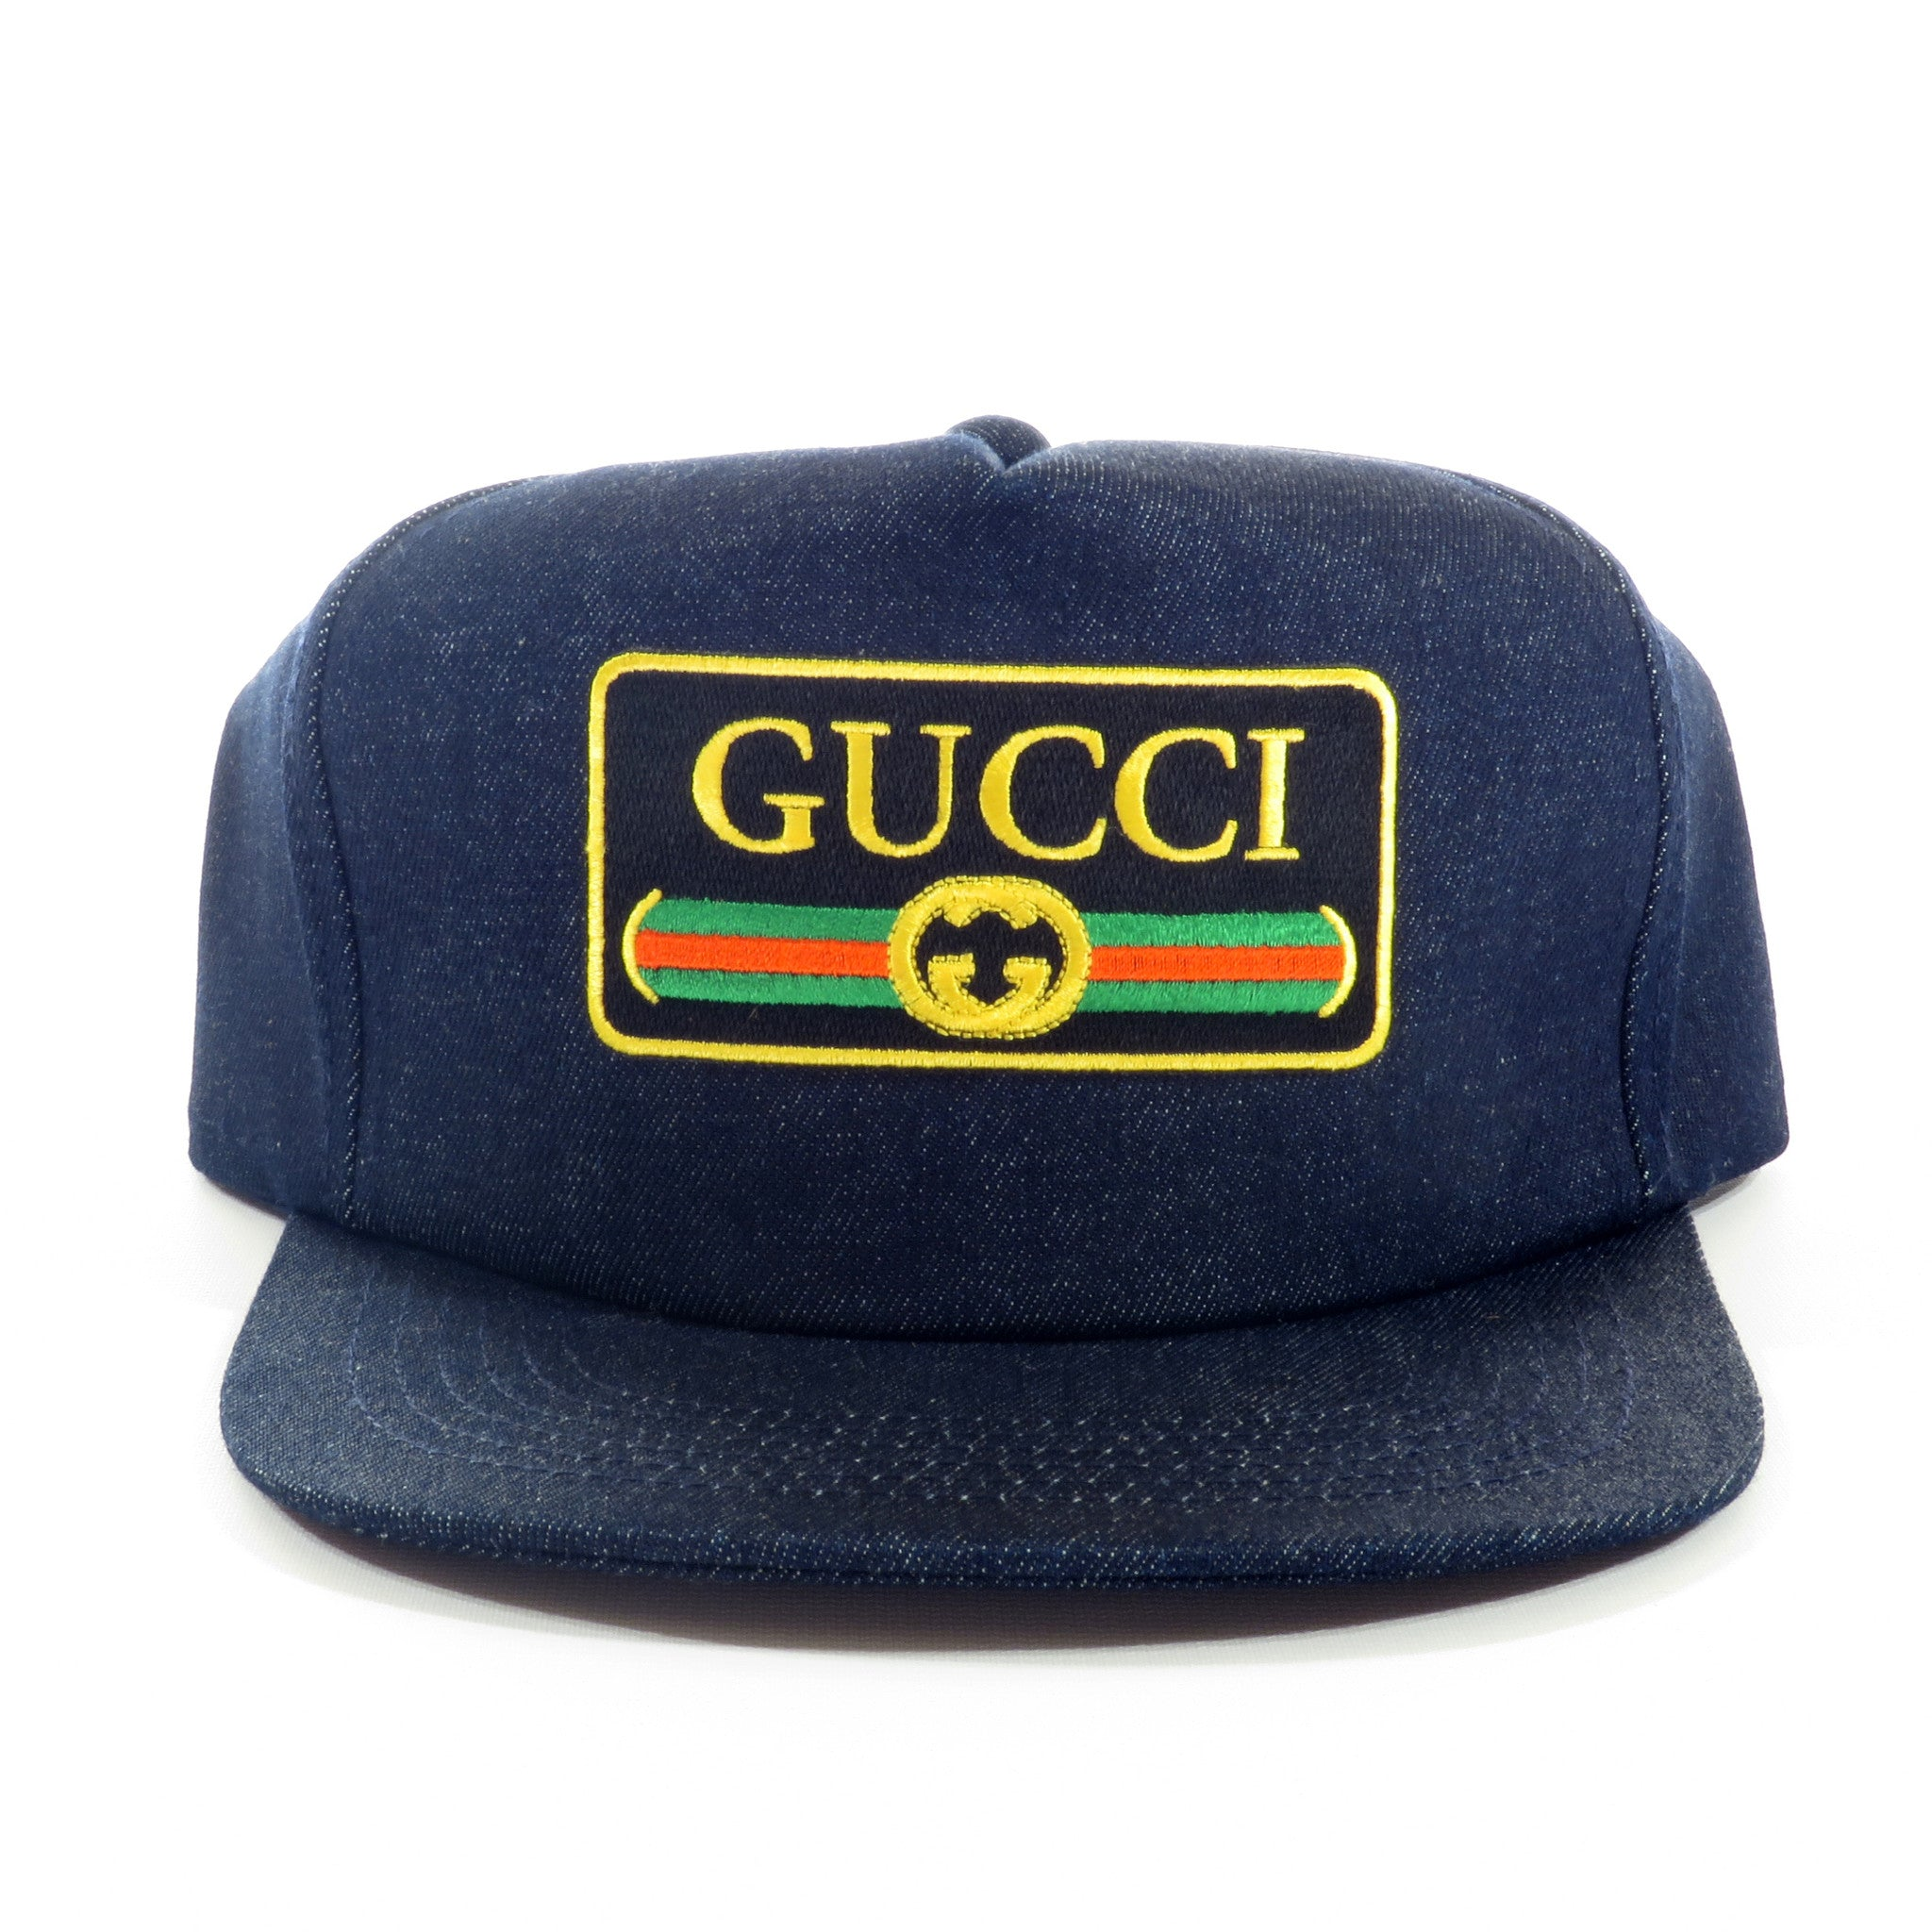 Gucci Rolls Royce Raw Denim Snapback Hat